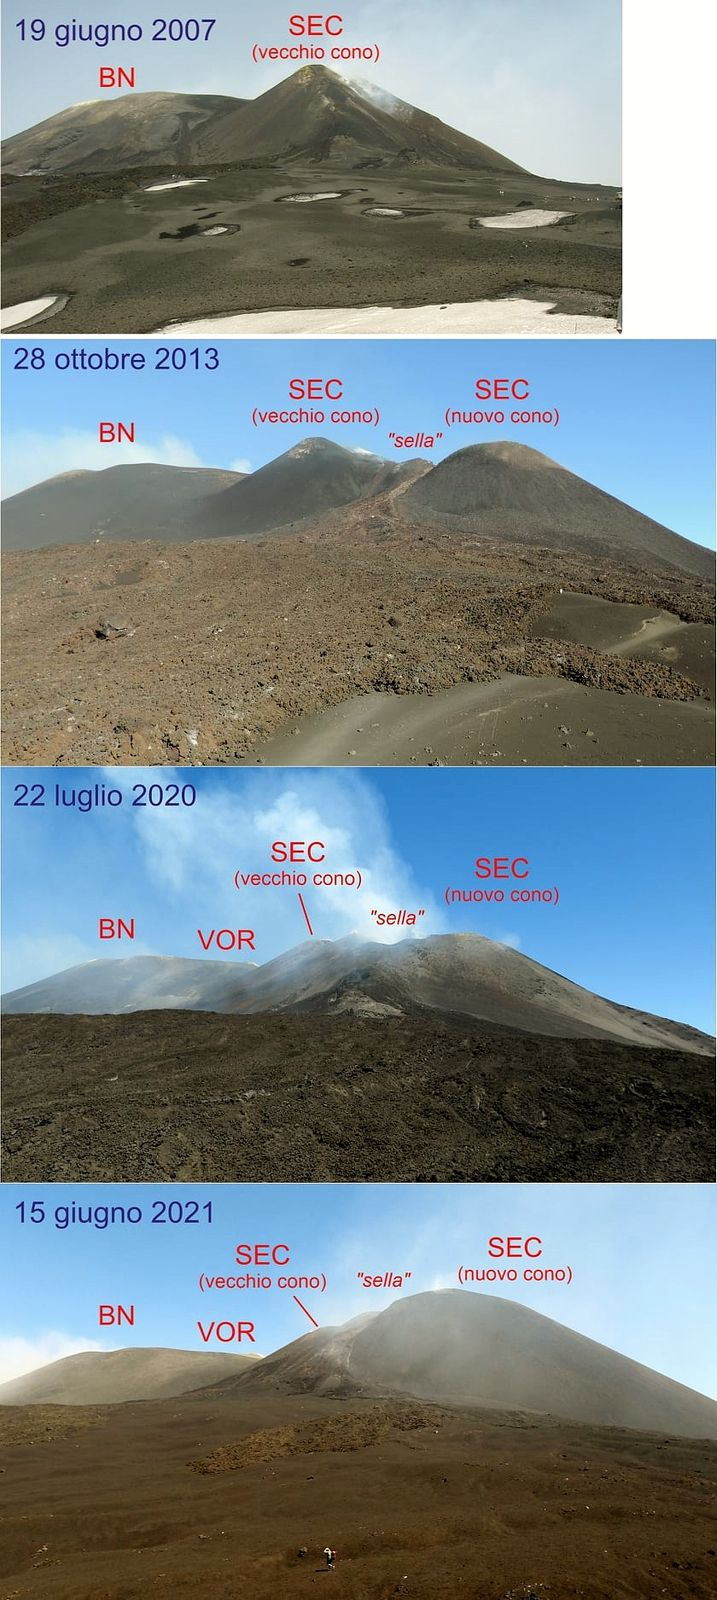 Etna - evolution of the Southeast crater from June 2007 to June 2021 - photos Boris Behncke, taken from the same point: north edge of Mount Barbagallo.